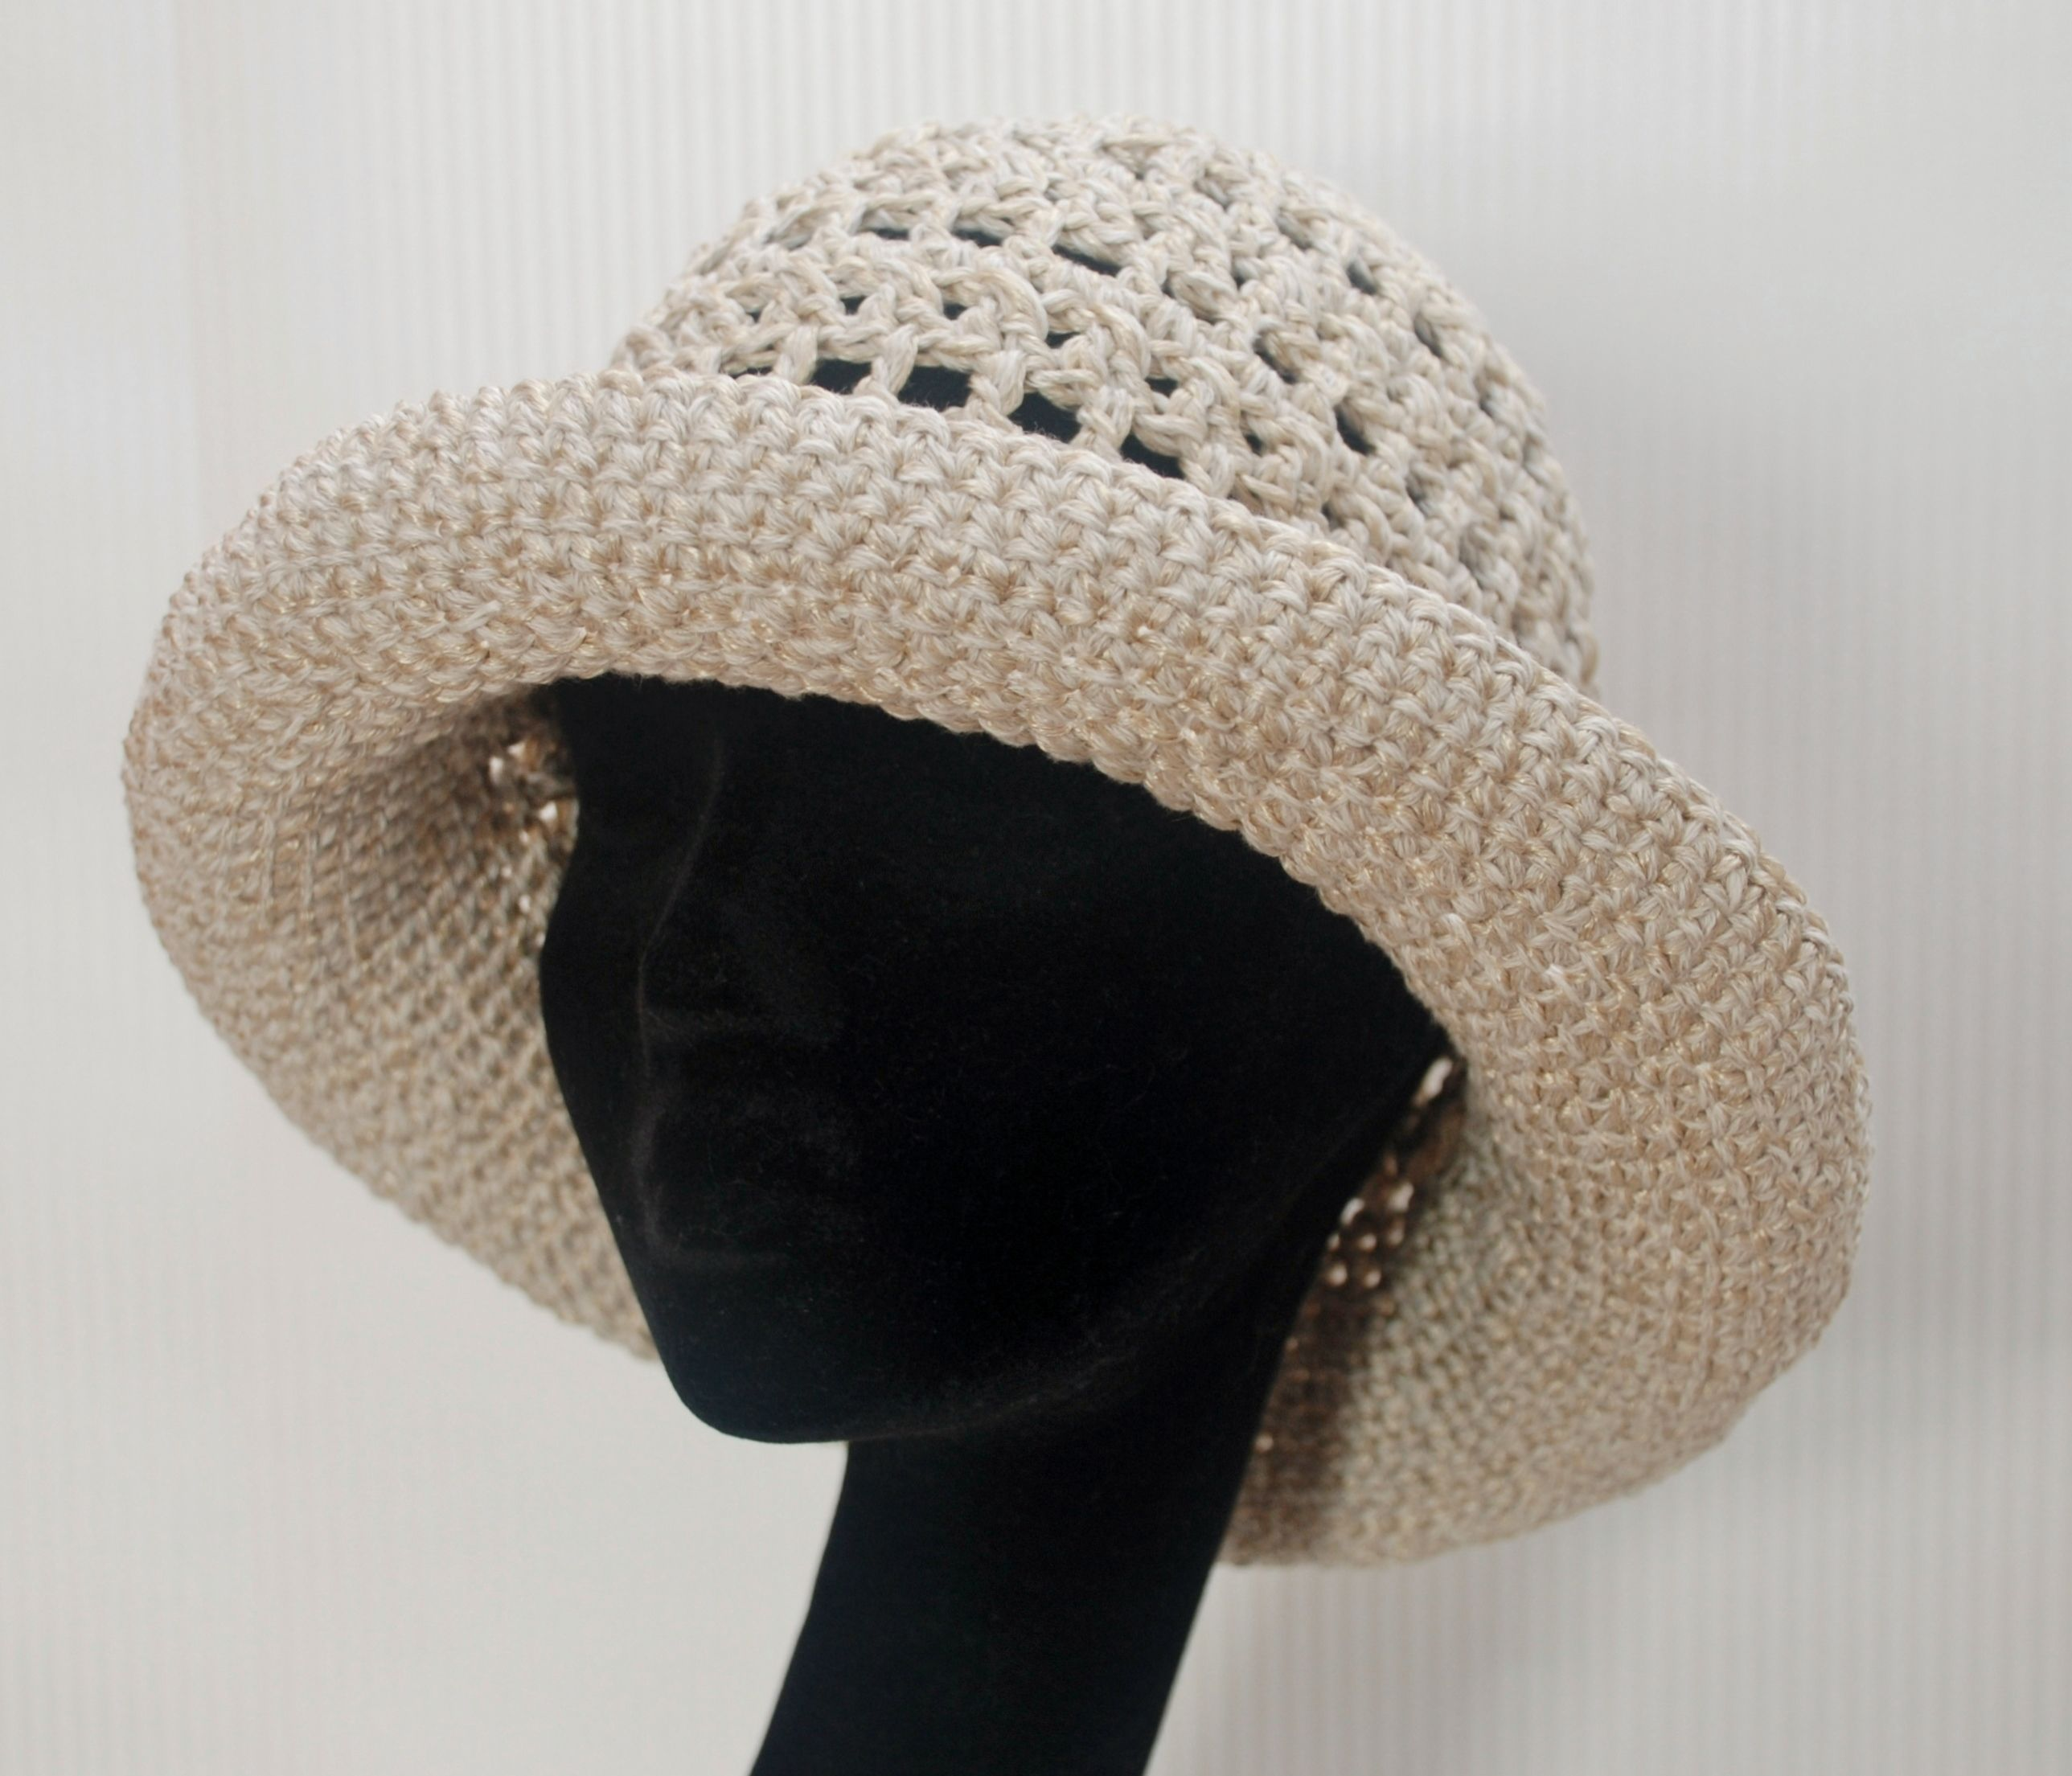 Wide brimmed summer hat crocheted in linen and egyptian cotton yarn